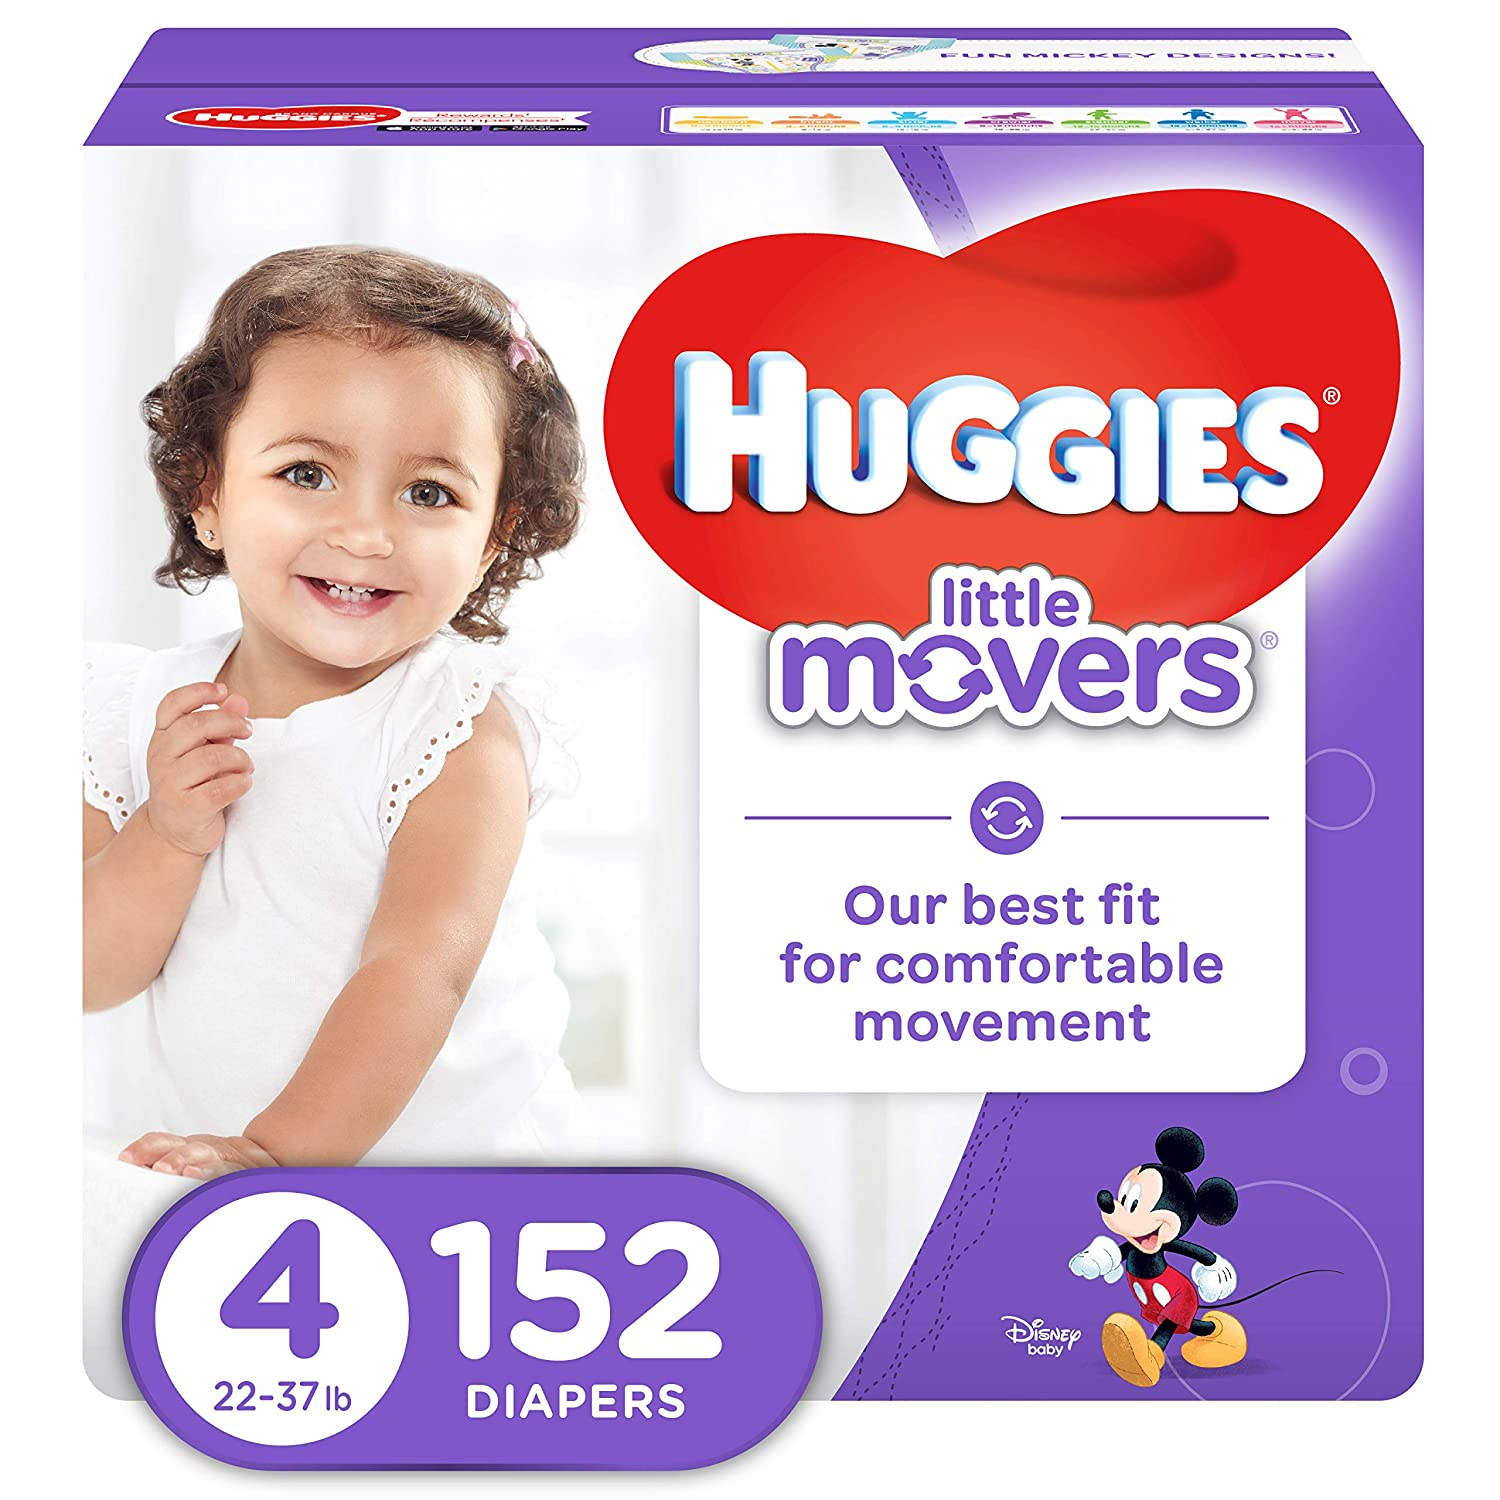 Huggies Little Movers Active Baby Diapers Size 4 Fits 22 37 Lb 152 Ct Economy Plus